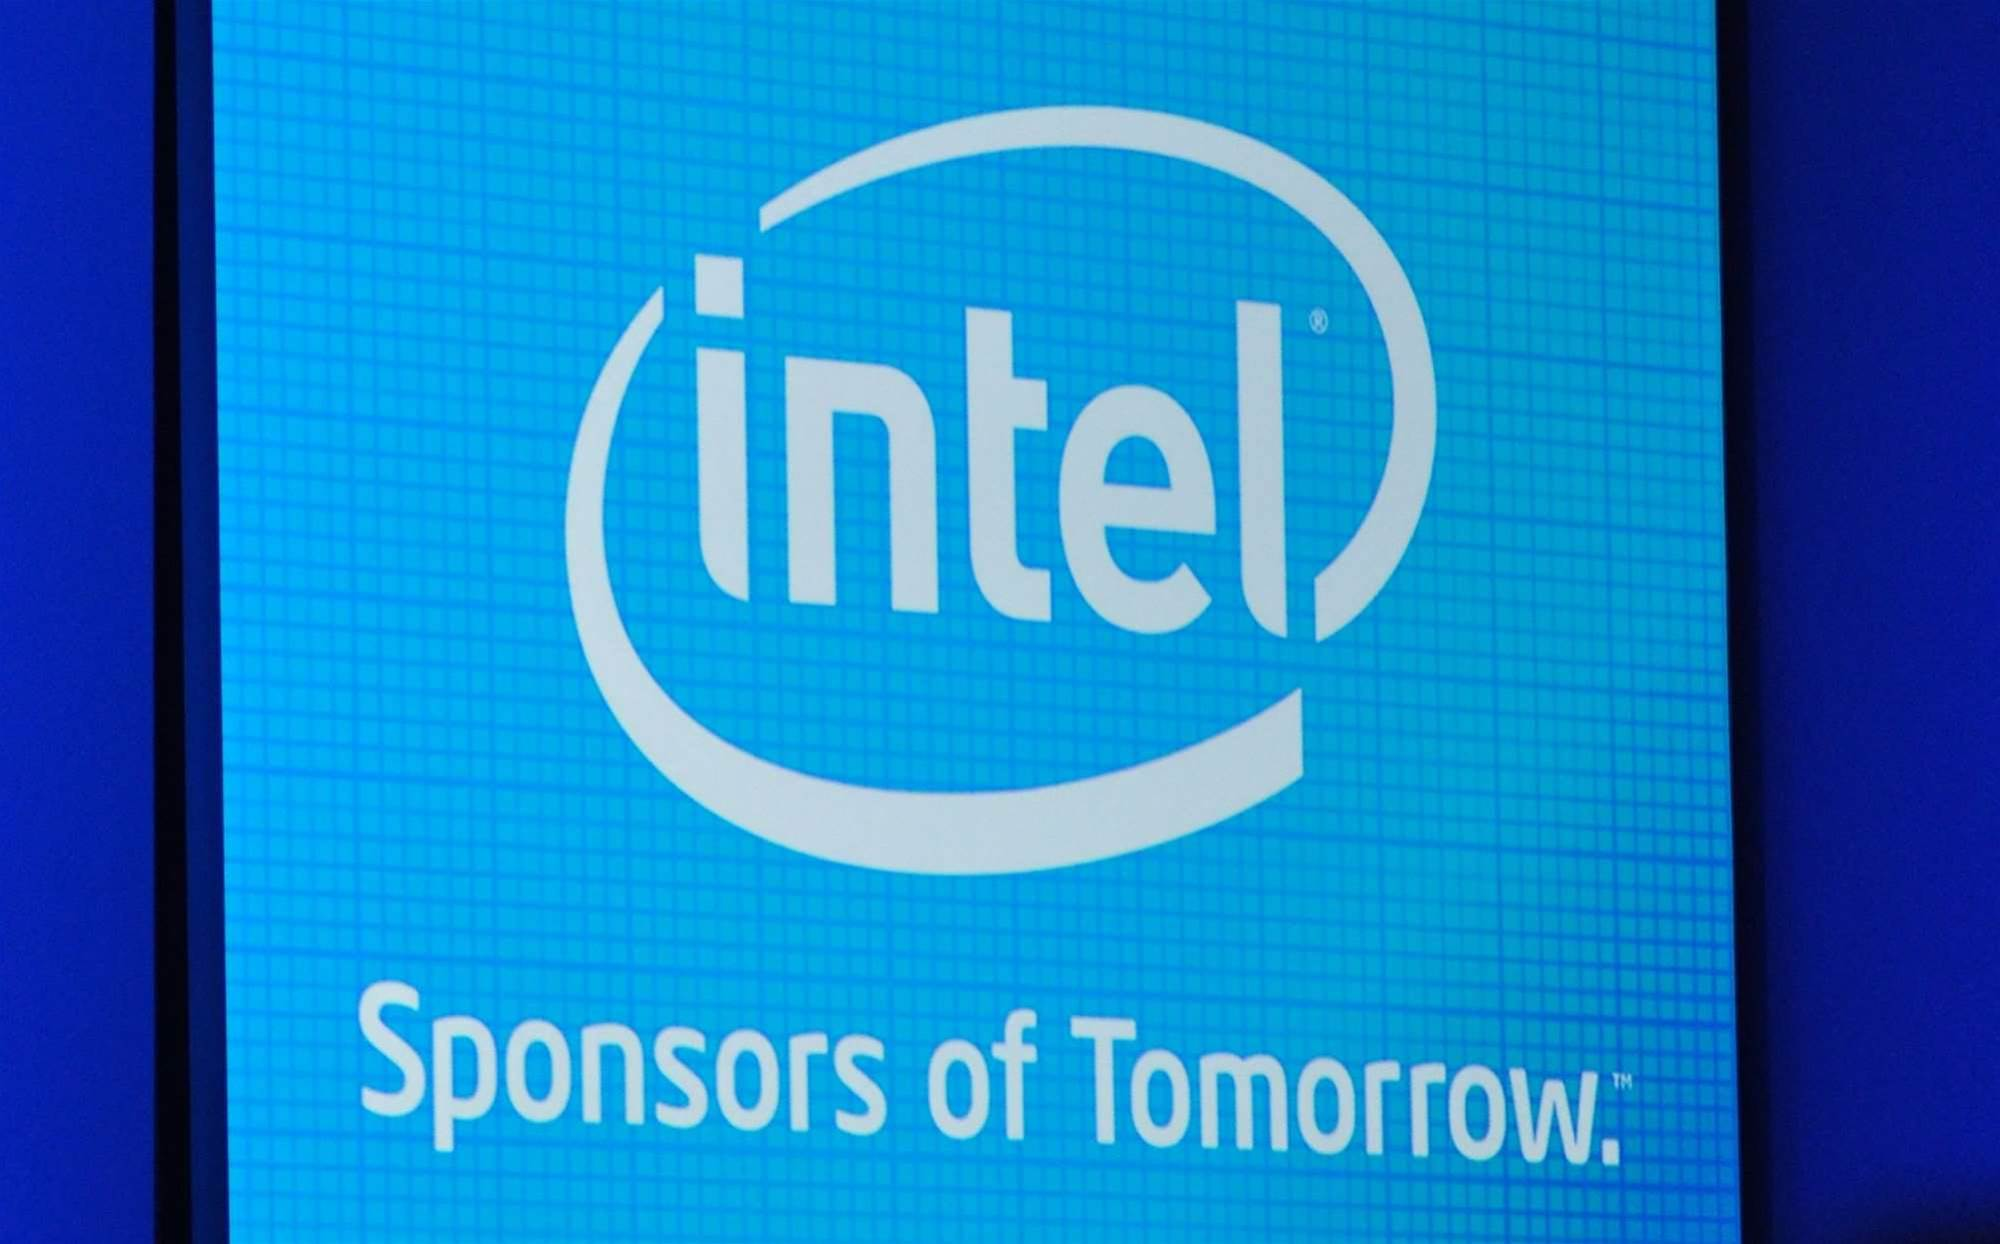 Intel Developer's Conference - what's happening?